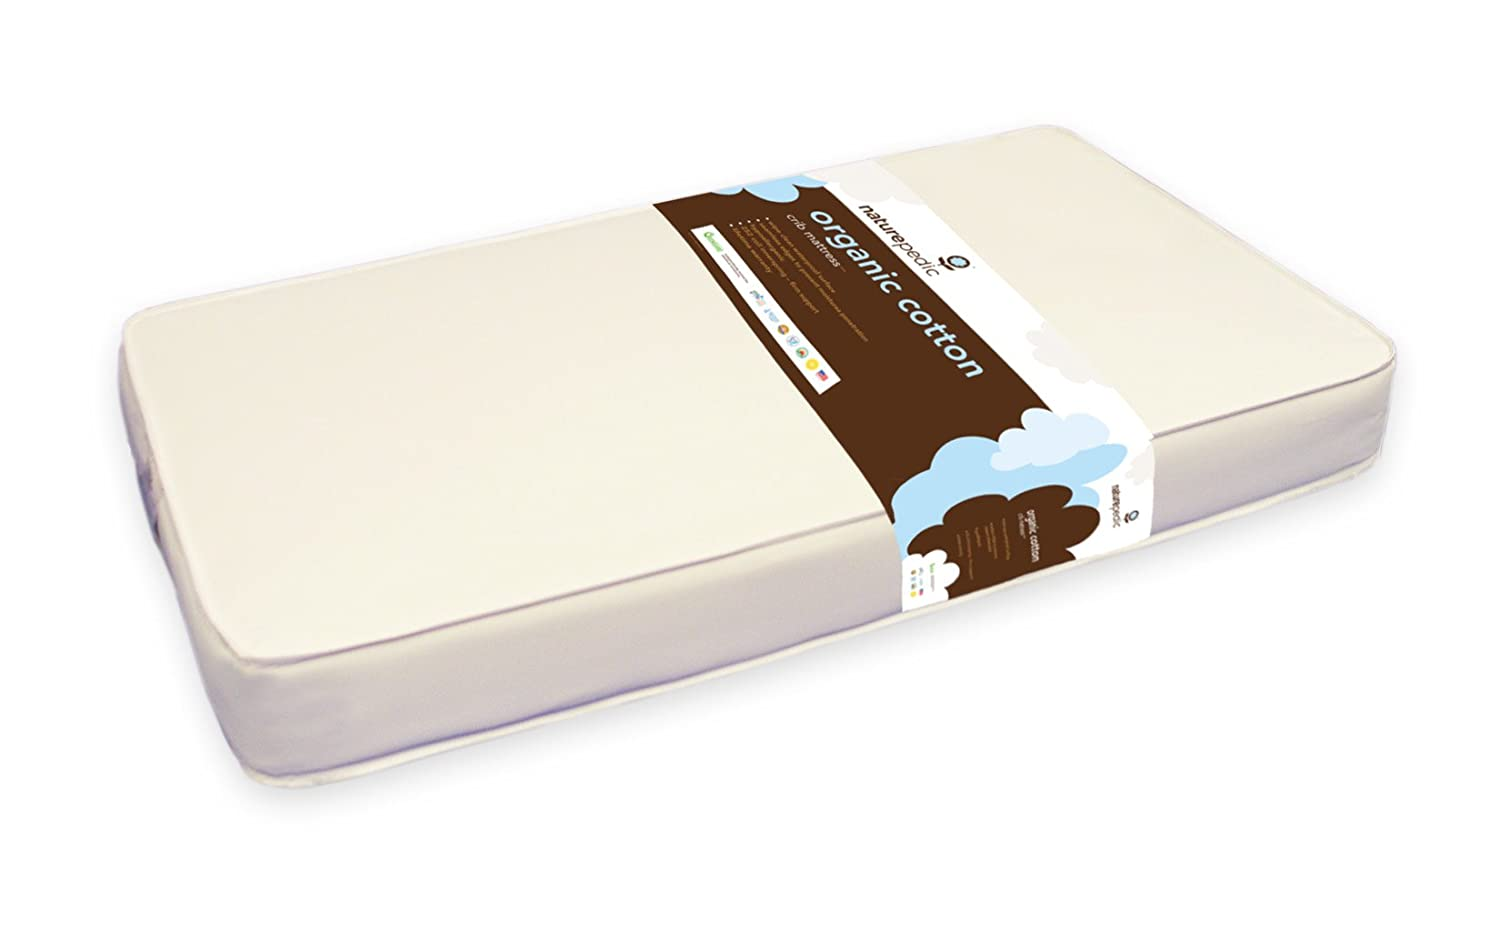 Amazon.com: Naturepedic No Compromise Organic Cotton Classic Crib Mattress:  Baby - Amazon.com: Naturepedic No Compromise Organic Cotton Classic Crib